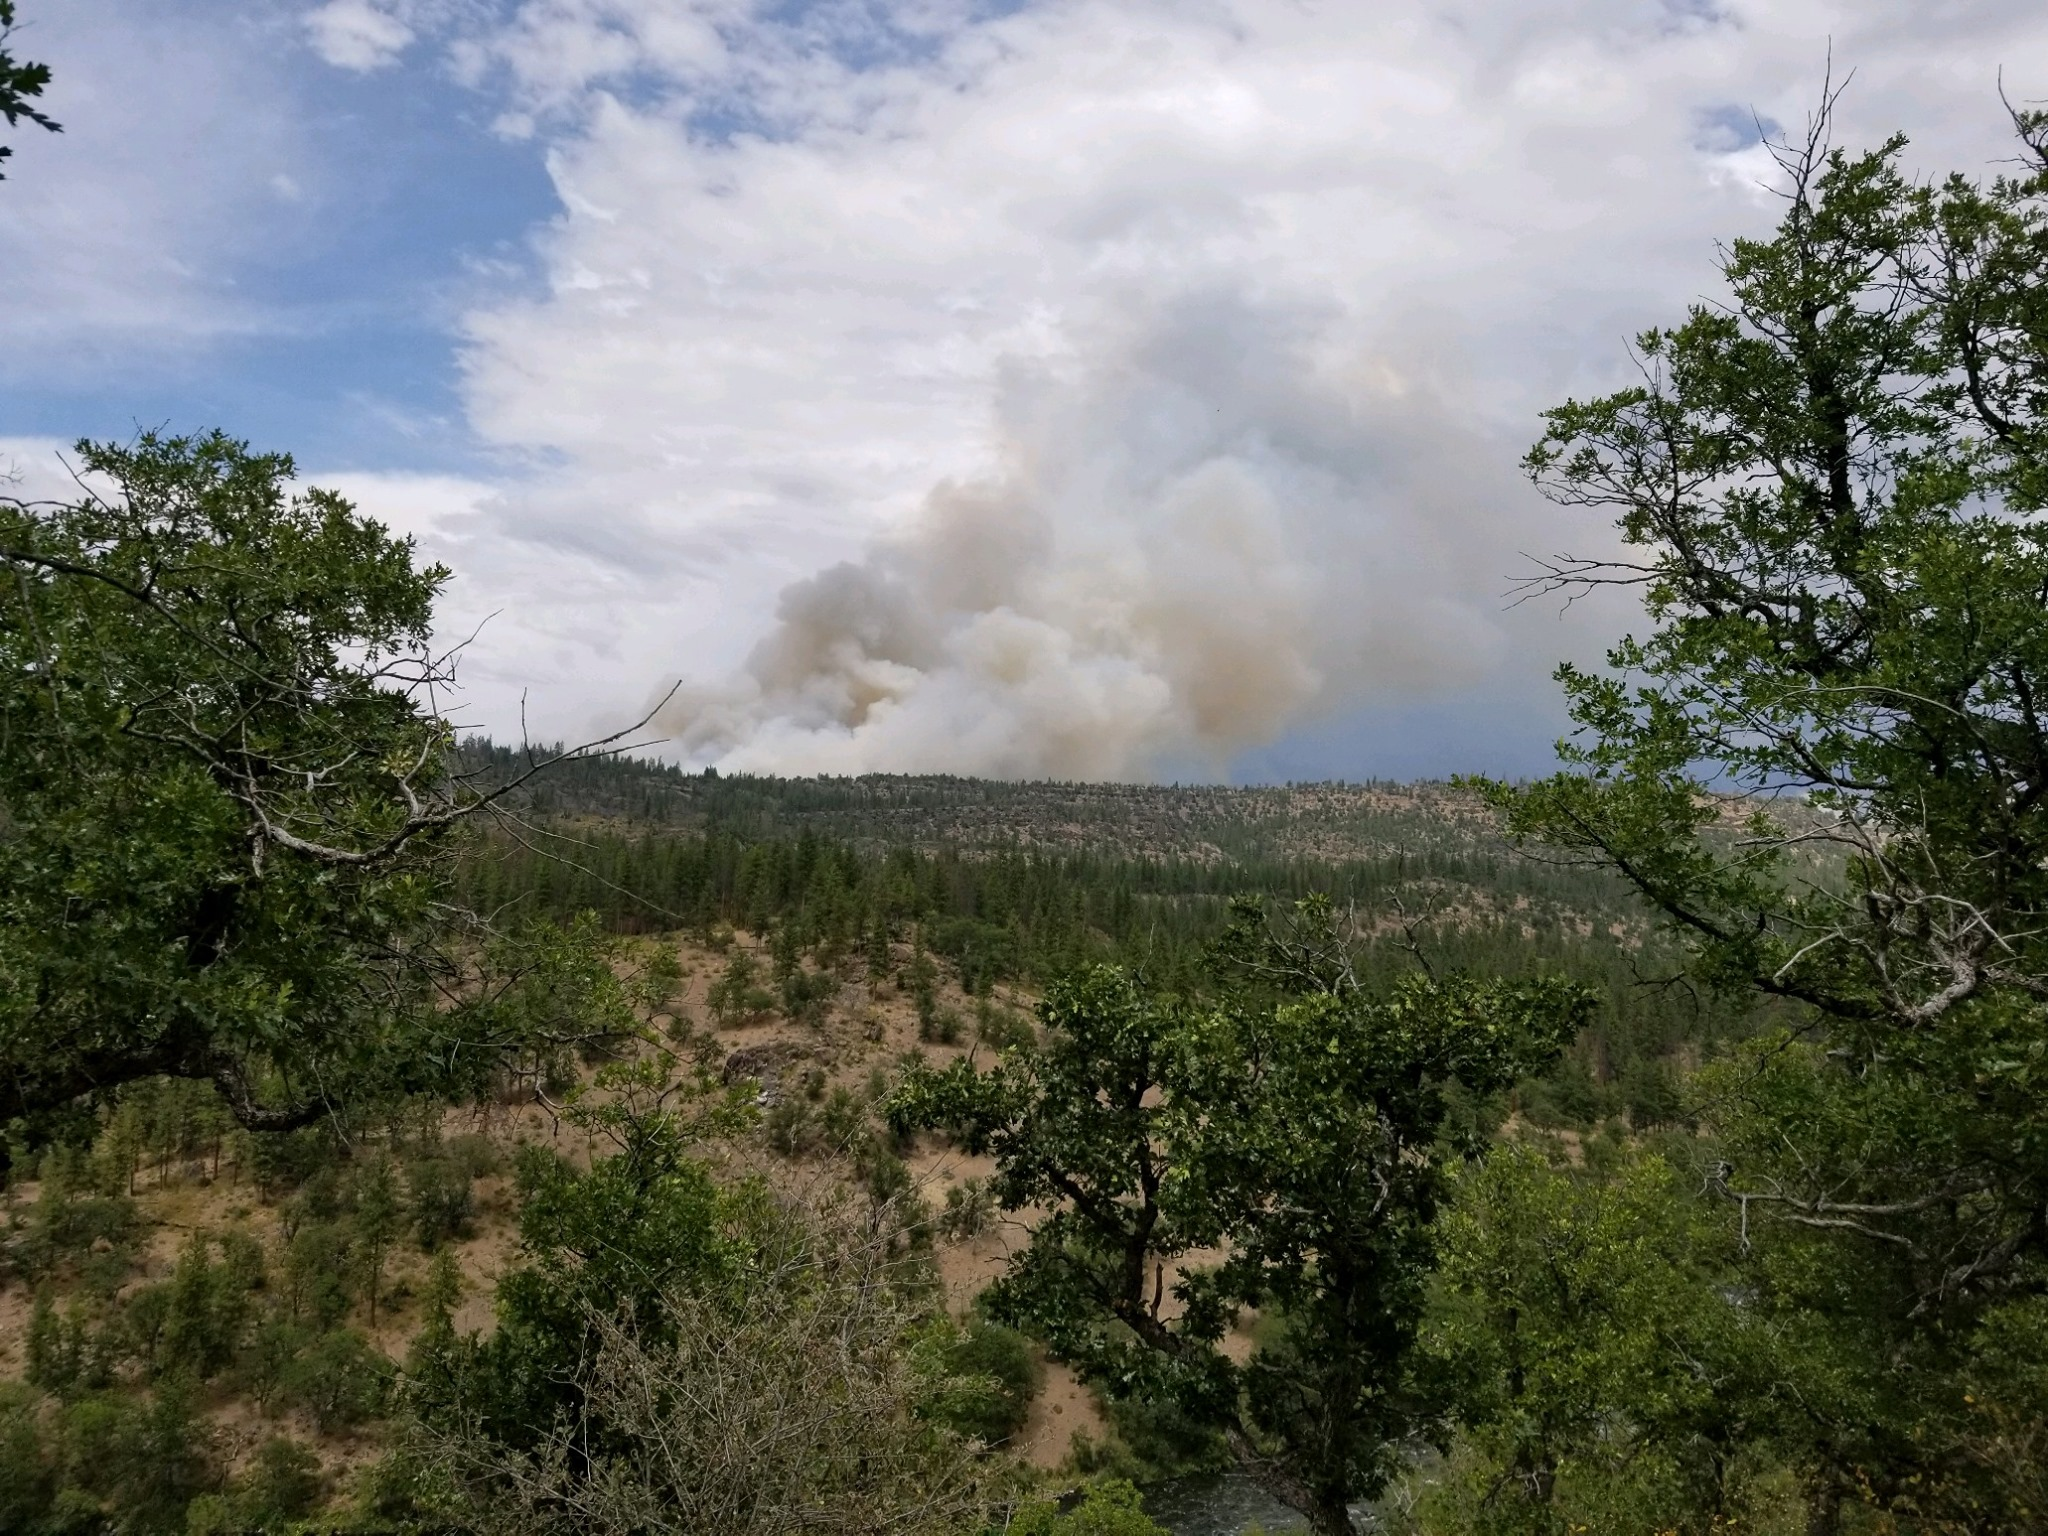 Ward Fire, 21 miles southwest of Klamath Falls. 1329 acres with 17% containment. ( Ward Fire Facebook )